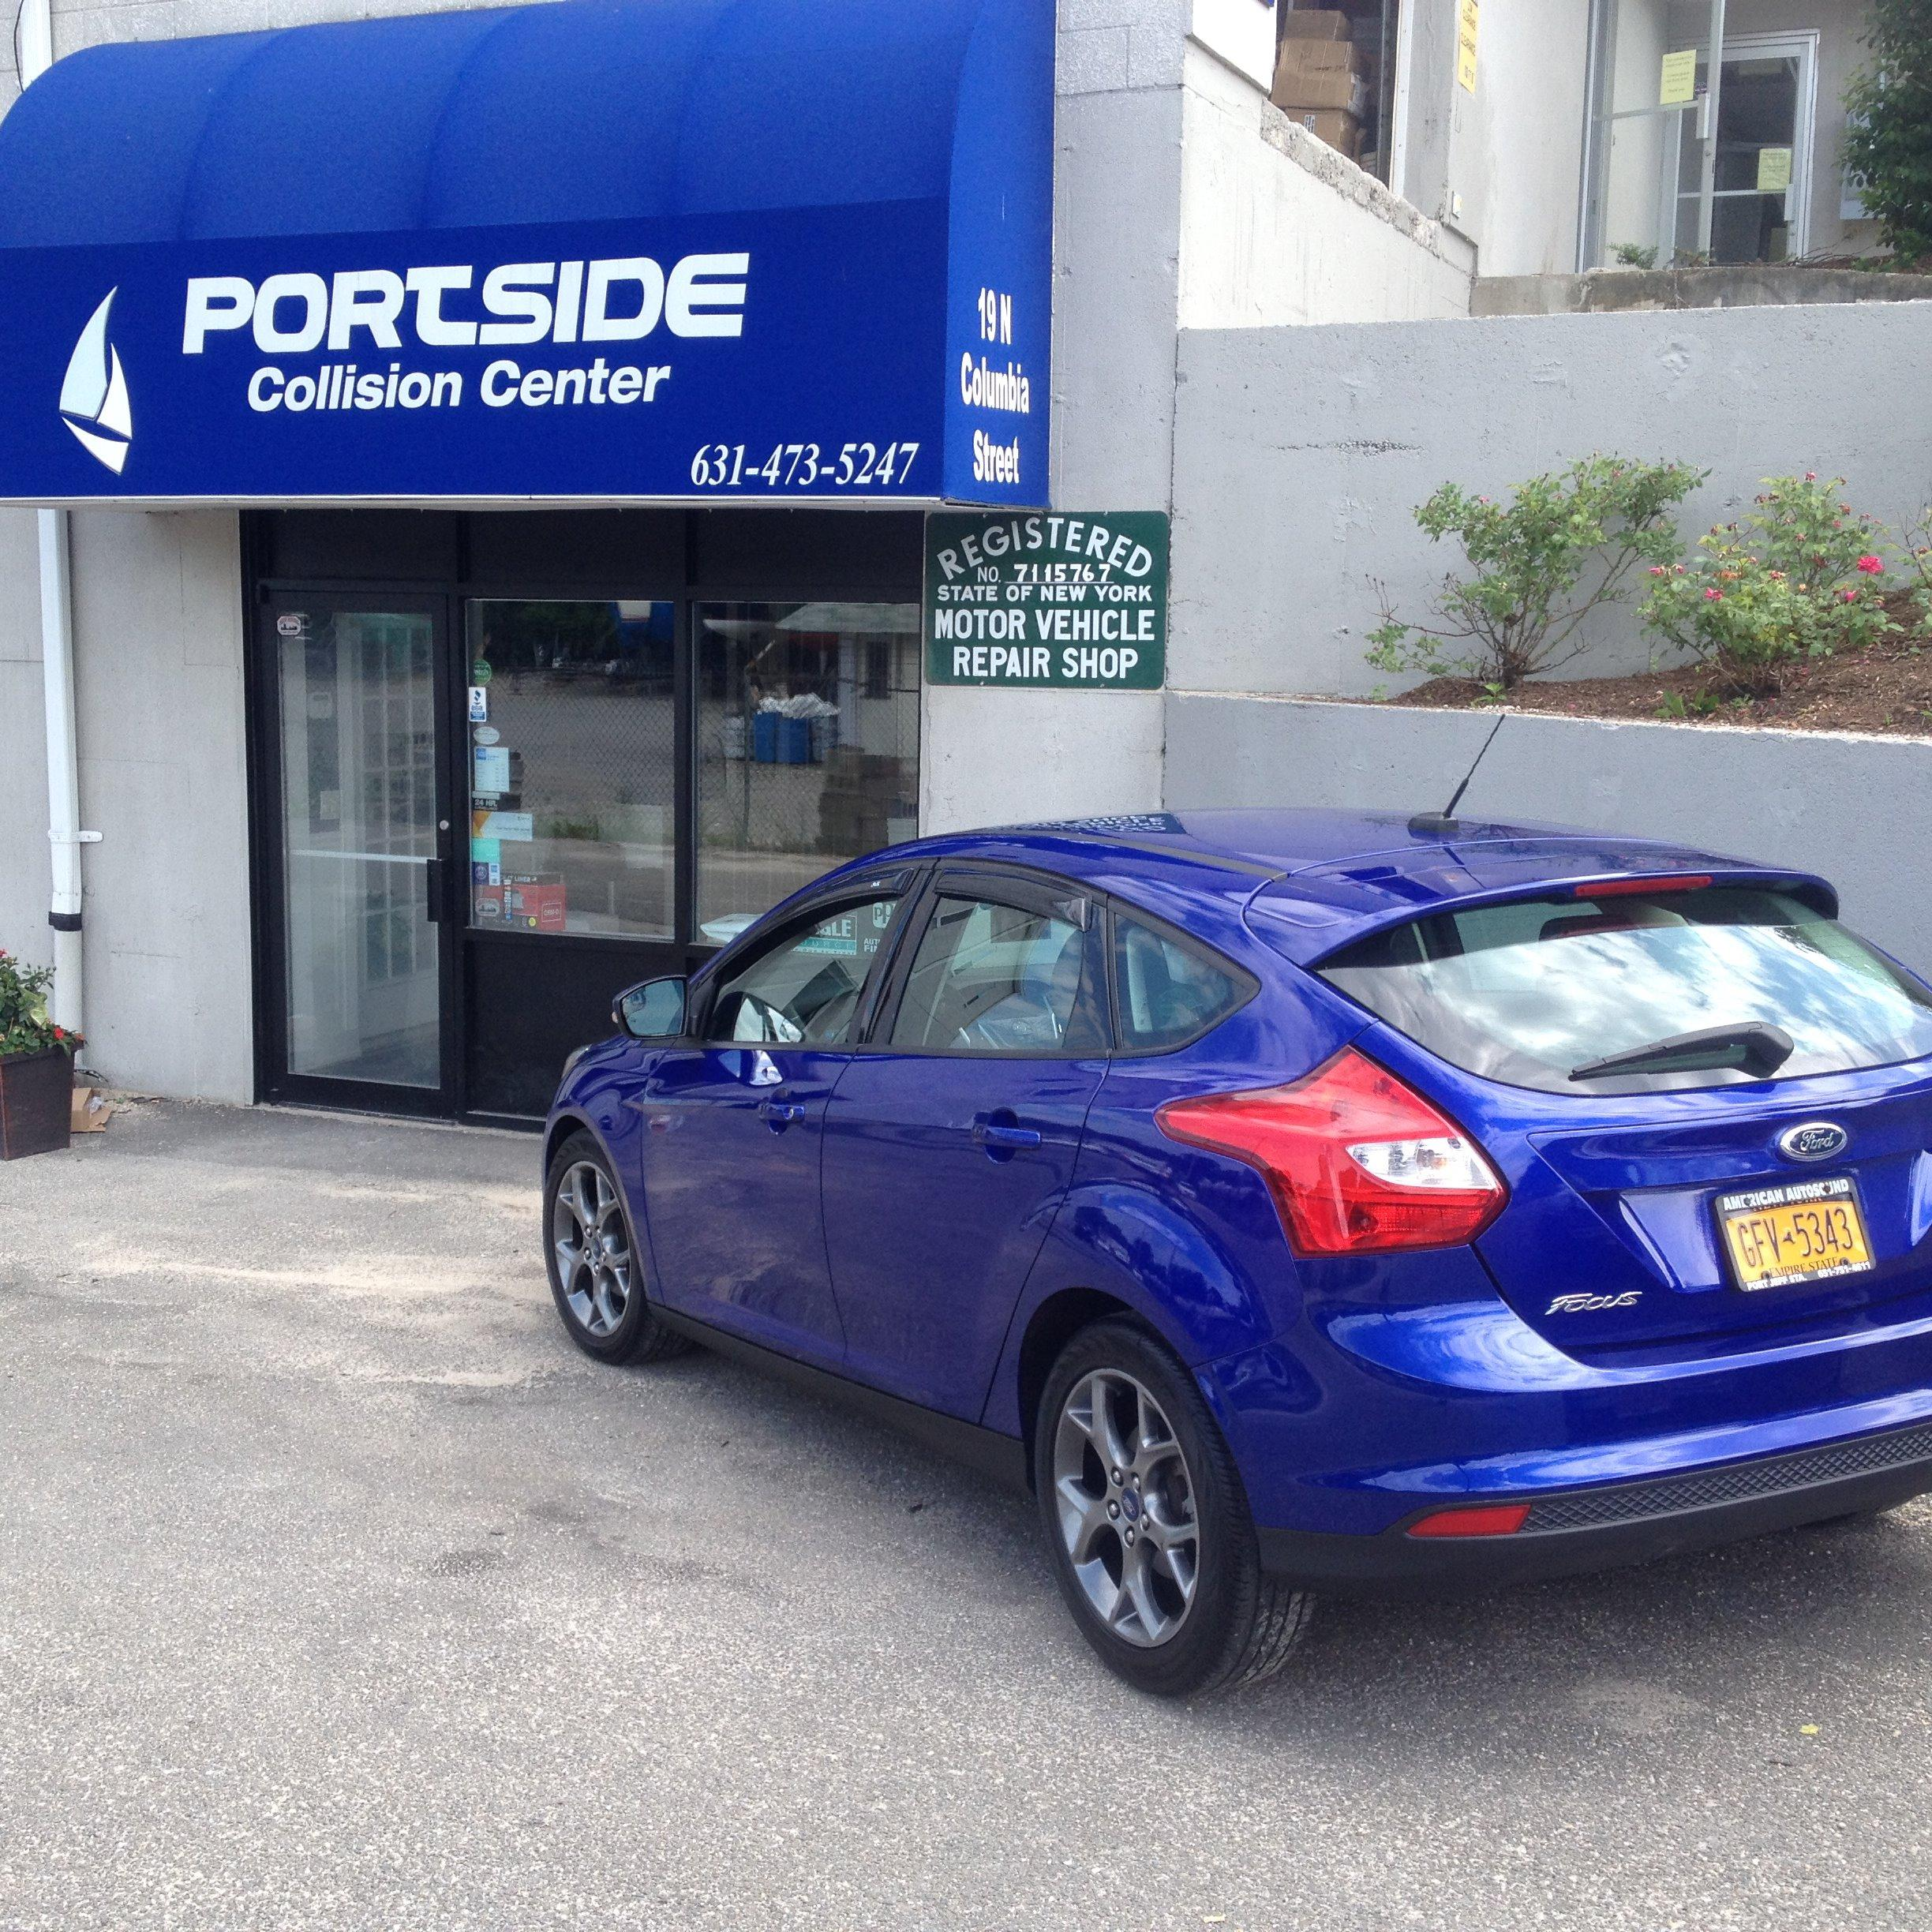 PORTSIDE COLLISION CENTER Coupons Near Me In Port